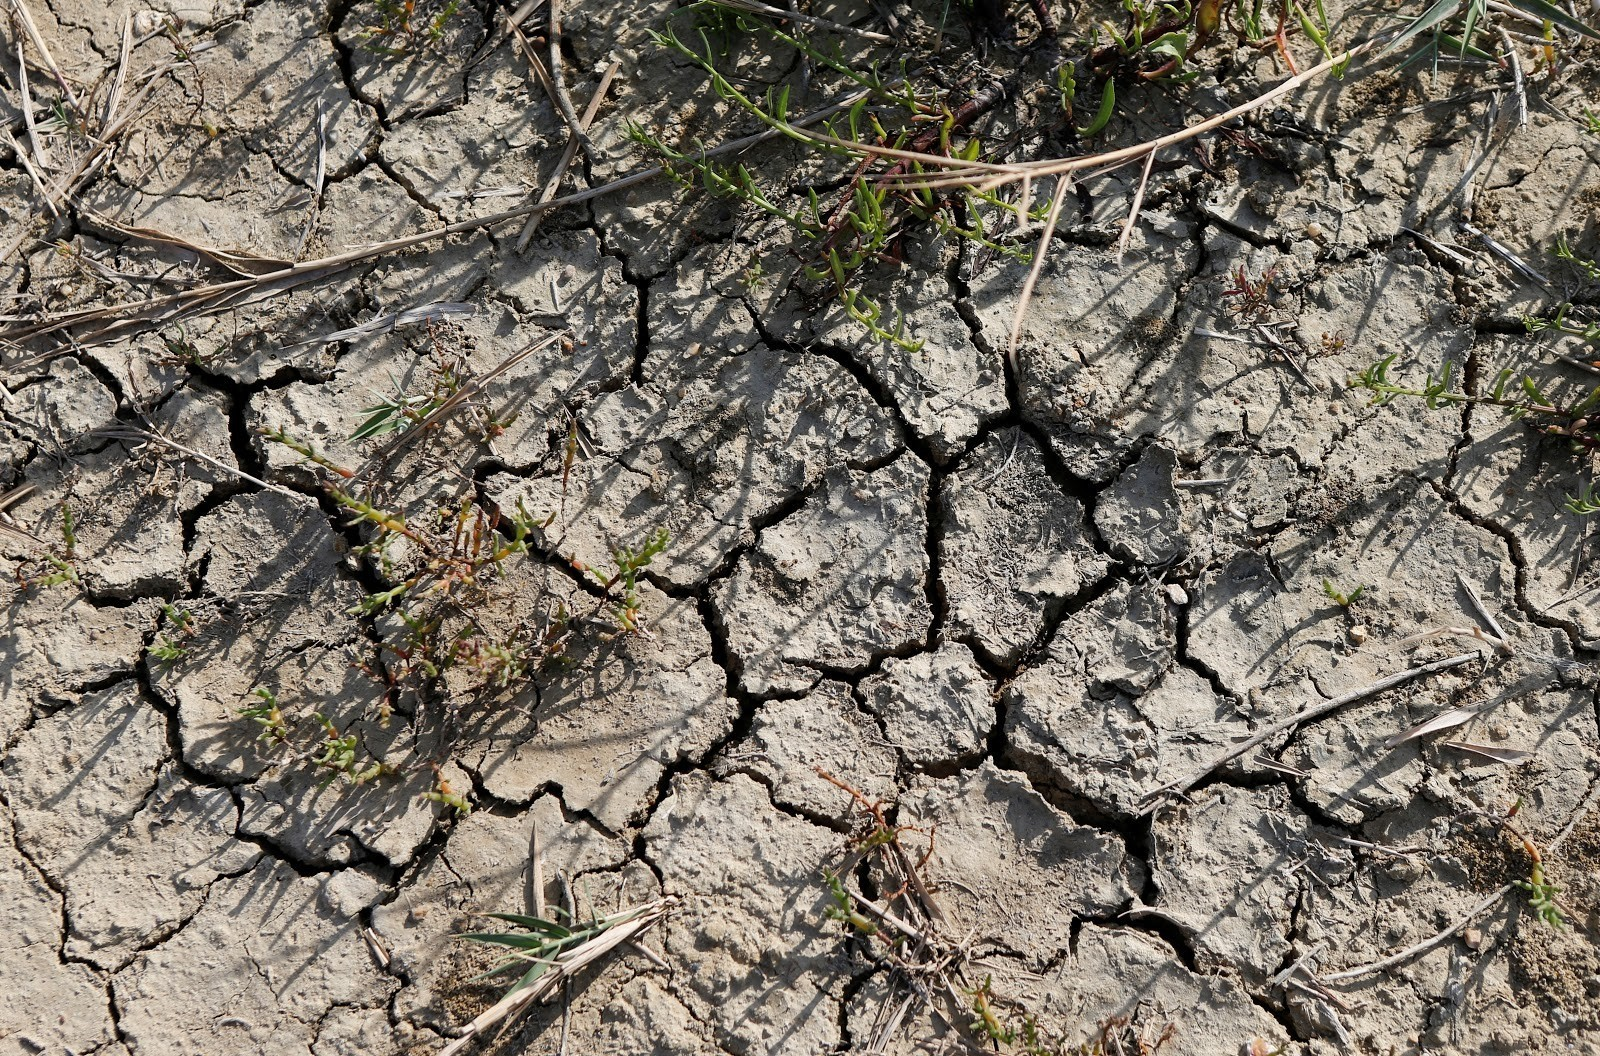 Somalia has suffered years of extreme droughts.